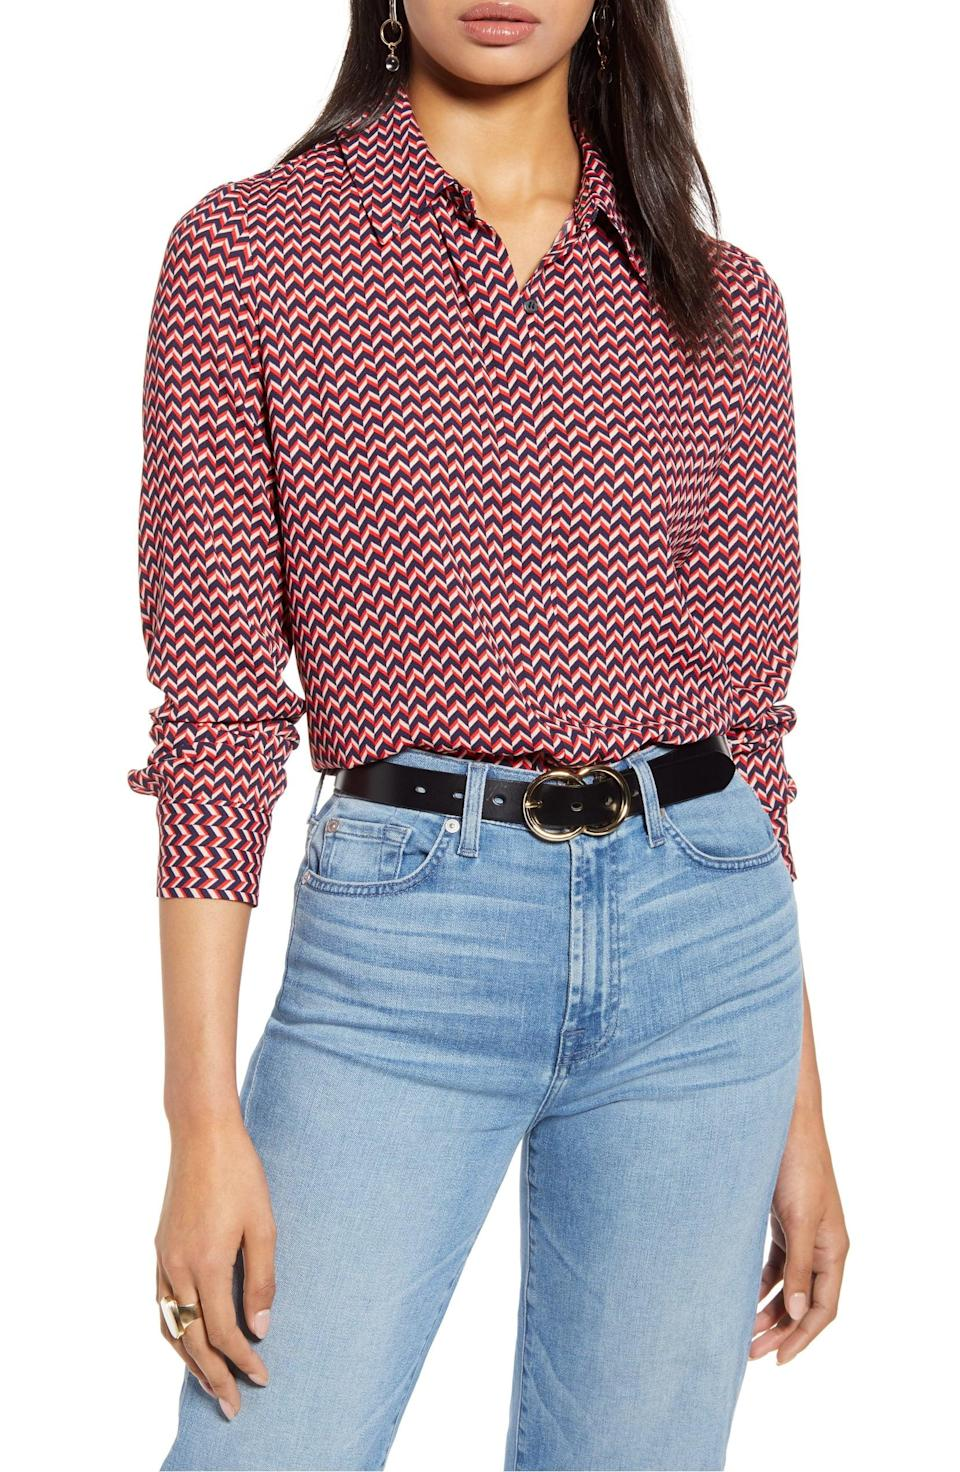 "<p>You could actually wear one of <a href=""https://www.popsugar.com/buy/Halogen-signature-blouses-551954?p_name=Halogen%27s%20signature%20blouses&retailer=shop.nordstrom.com&pid=551954&price=79&evar1=fab%3Aus&evar9=34097656&evar98=https%3A%2F%2Fwww.popsugar.com%2Ffashion%2Fphoto-gallery%2F34097656%2Fimage%2F34097666%2FButton-Down-Blouse&list1=shopping%2Cequipment%2Cstyle%20how%20to&prop13=mobile&pdata=1"" class=""link rapid-noclick-resp"" rel=""nofollow noopener"" target=""_blank"" data-ylk=""slk:Halogen's signature blouses"">Halogen's signature blouses</a> ($79) every day if you had to - and you might just want to. It works as an office blouse, going-out top, easy brunch button-down, and fits just about every other occasion, too. How many tops can you say that about?</p>"